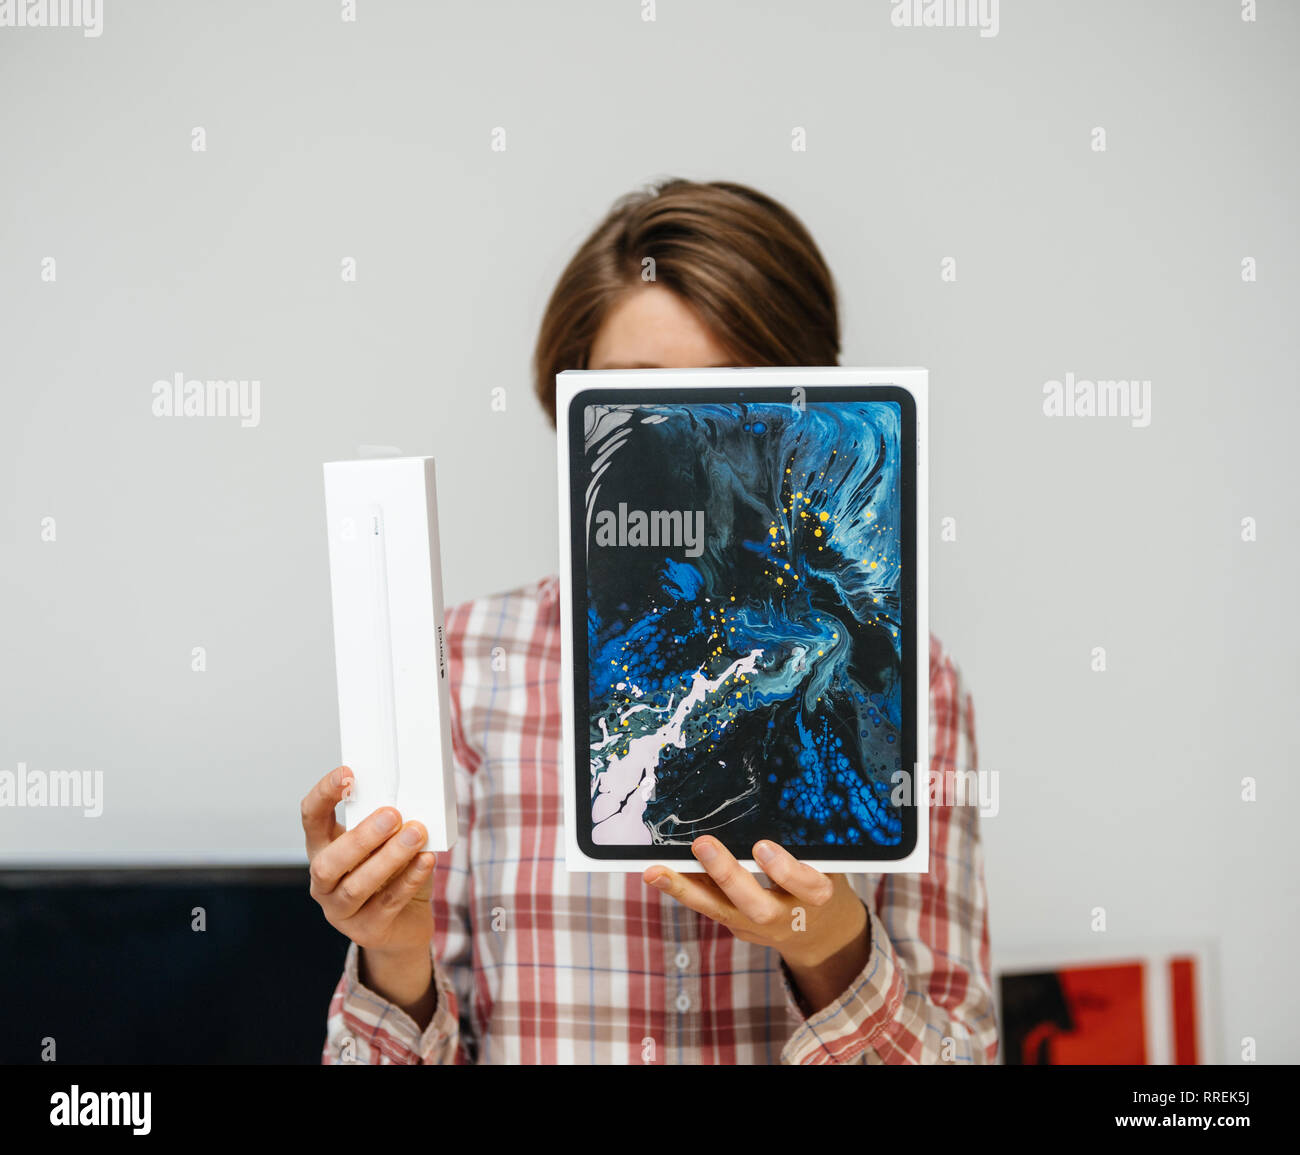 PARIS, FRANCE - DEC 2, 2018: Casual dressed woman holding new Apple Computers ipad Pro tablet and Apple Pencil 2 cardboard box - holding the cardboards in front of her face - Stock Image